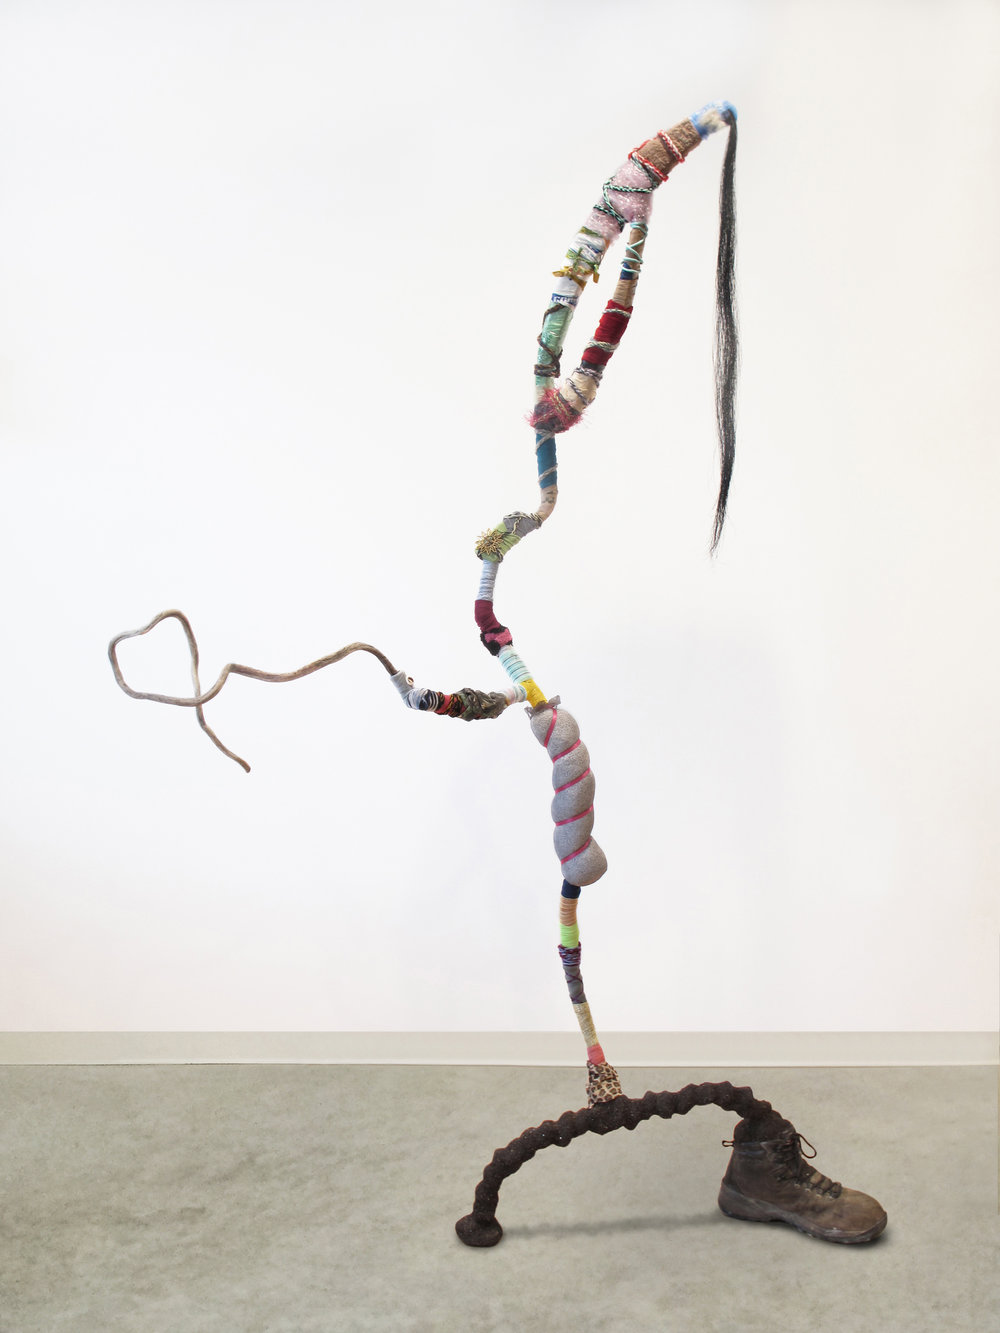 "Gina Herrera, A Salutation to All, Assorted found materials, 77 x 50 x 19 inches ""Reclaimed natural and man-made waste take on a humanoid shape, down to the wide-legged stance featuring an abandoned work boot. A twisting stick appendage extends in greeting, seeks acknowledgement."""